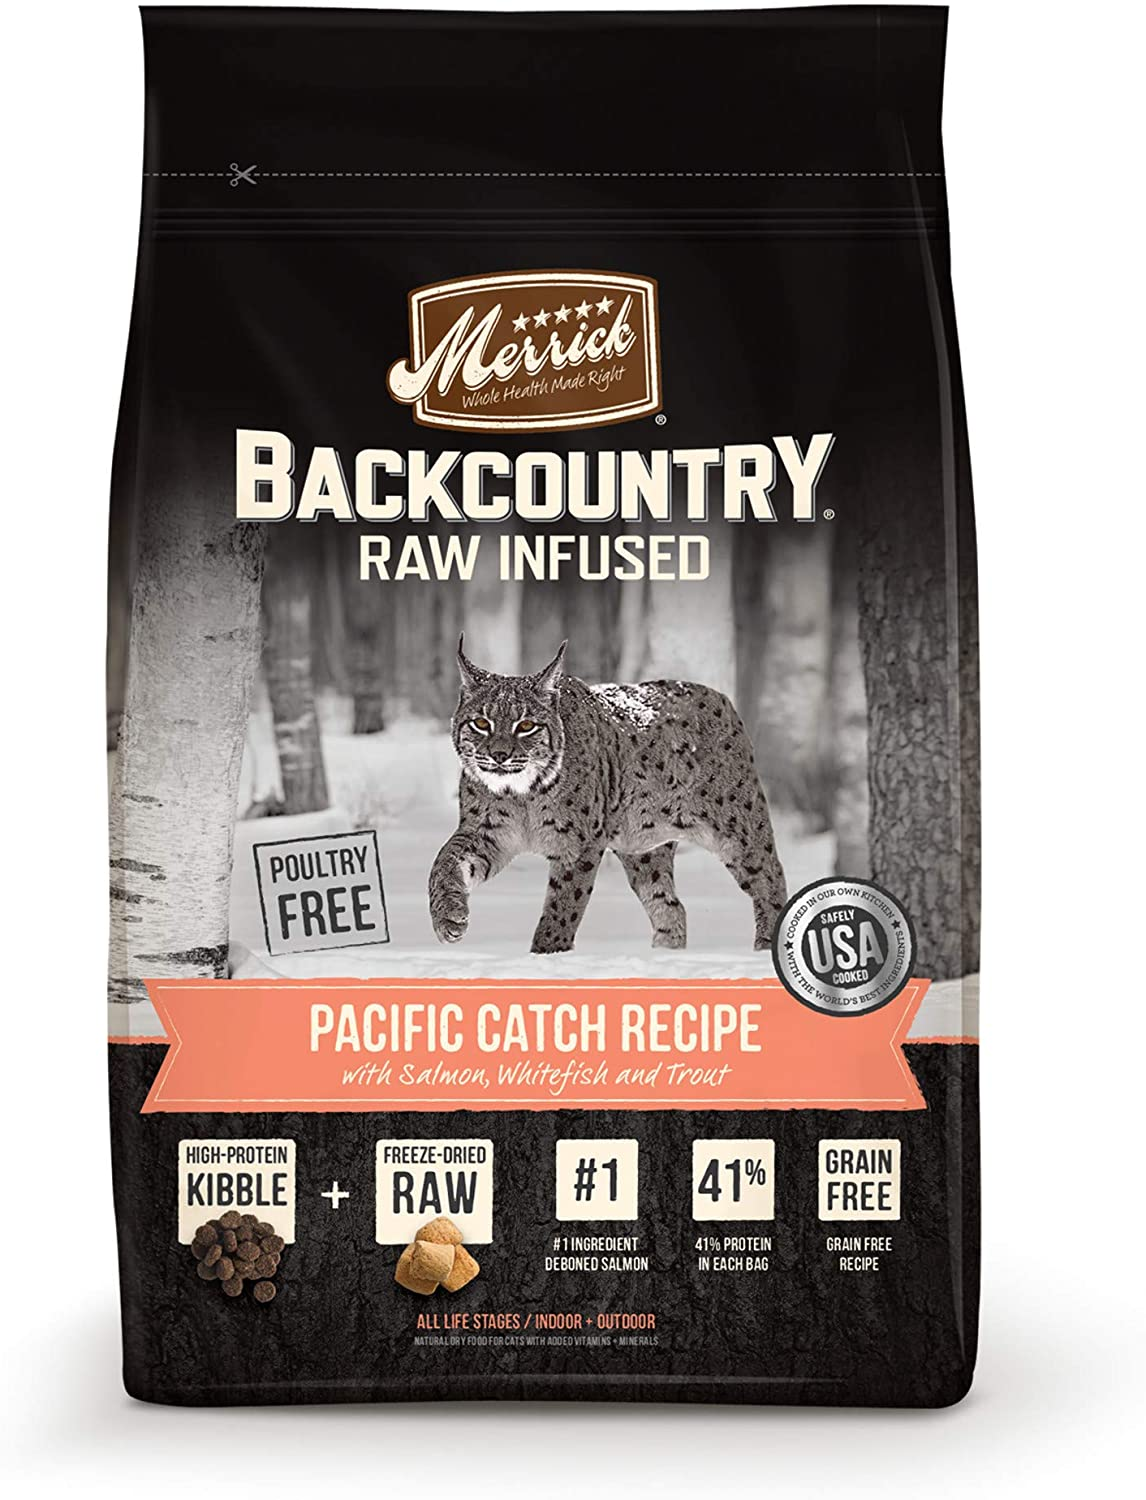 Backcountry Raw Infused Pacific Catch Recipe